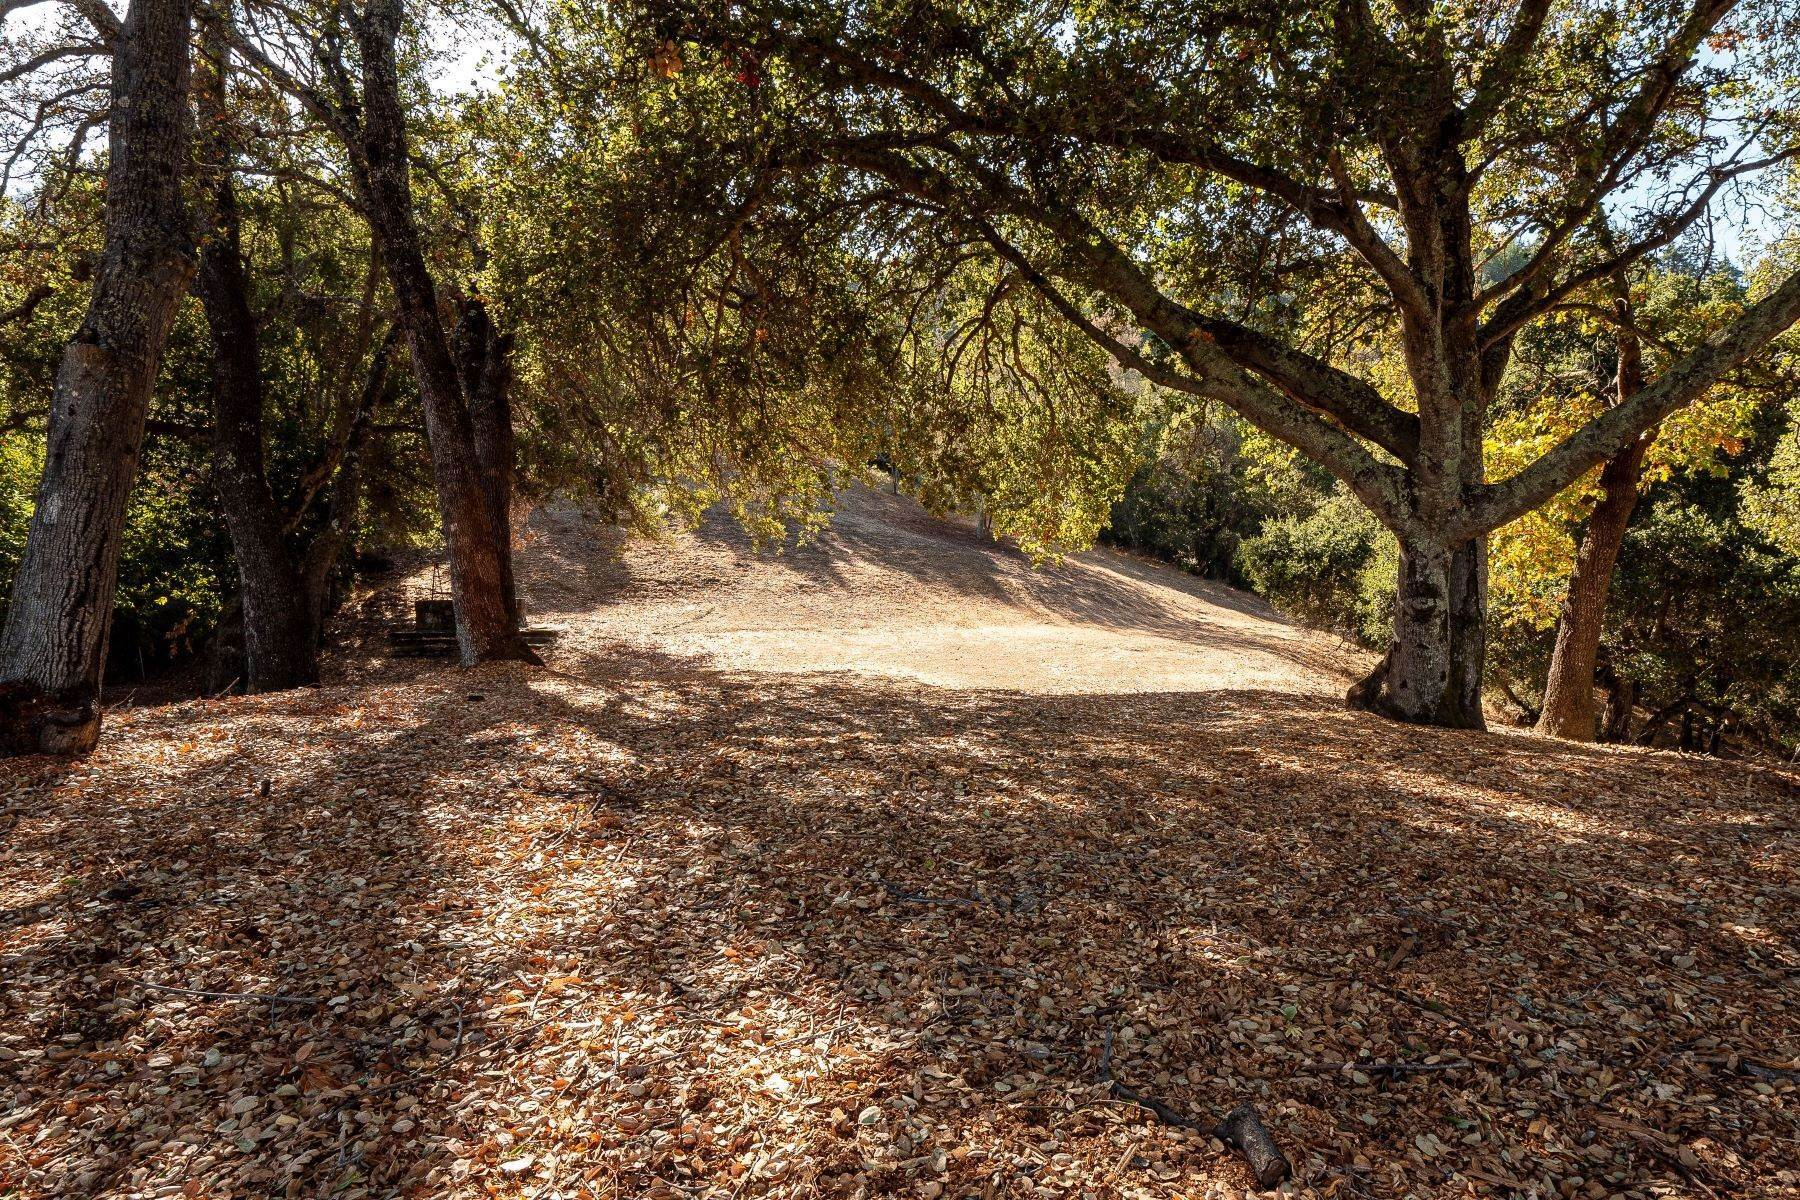 5. Land for Sale at 15400 Madrone Hill Road, Saratoga 15400 Madrone Hill Road Saratoga, California 95070 United States